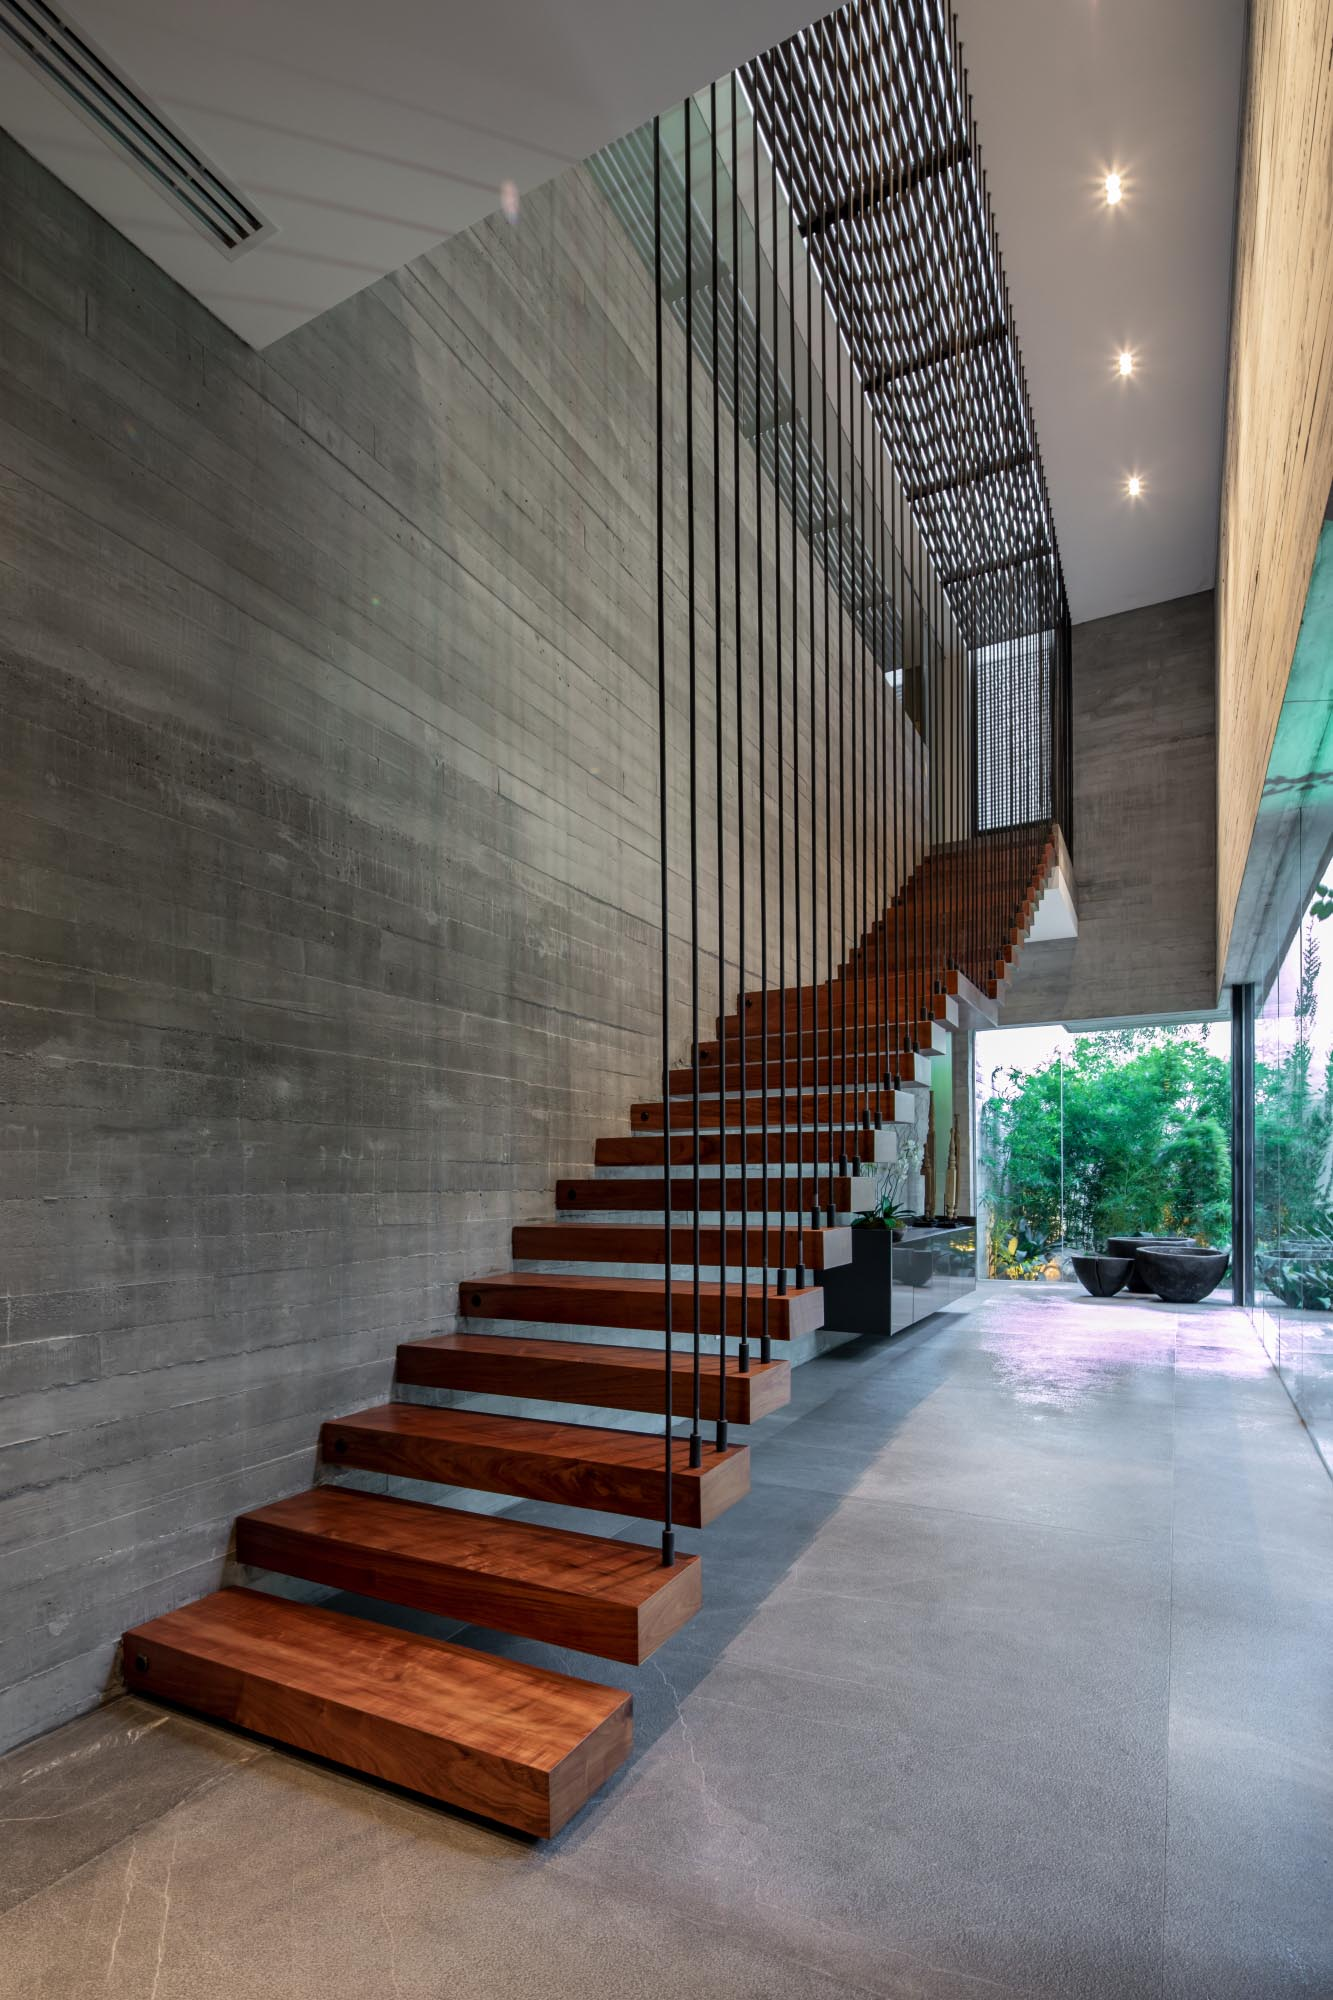 A board-formed concrete wall is visible alongside a wood staircase, which also lights up at night.